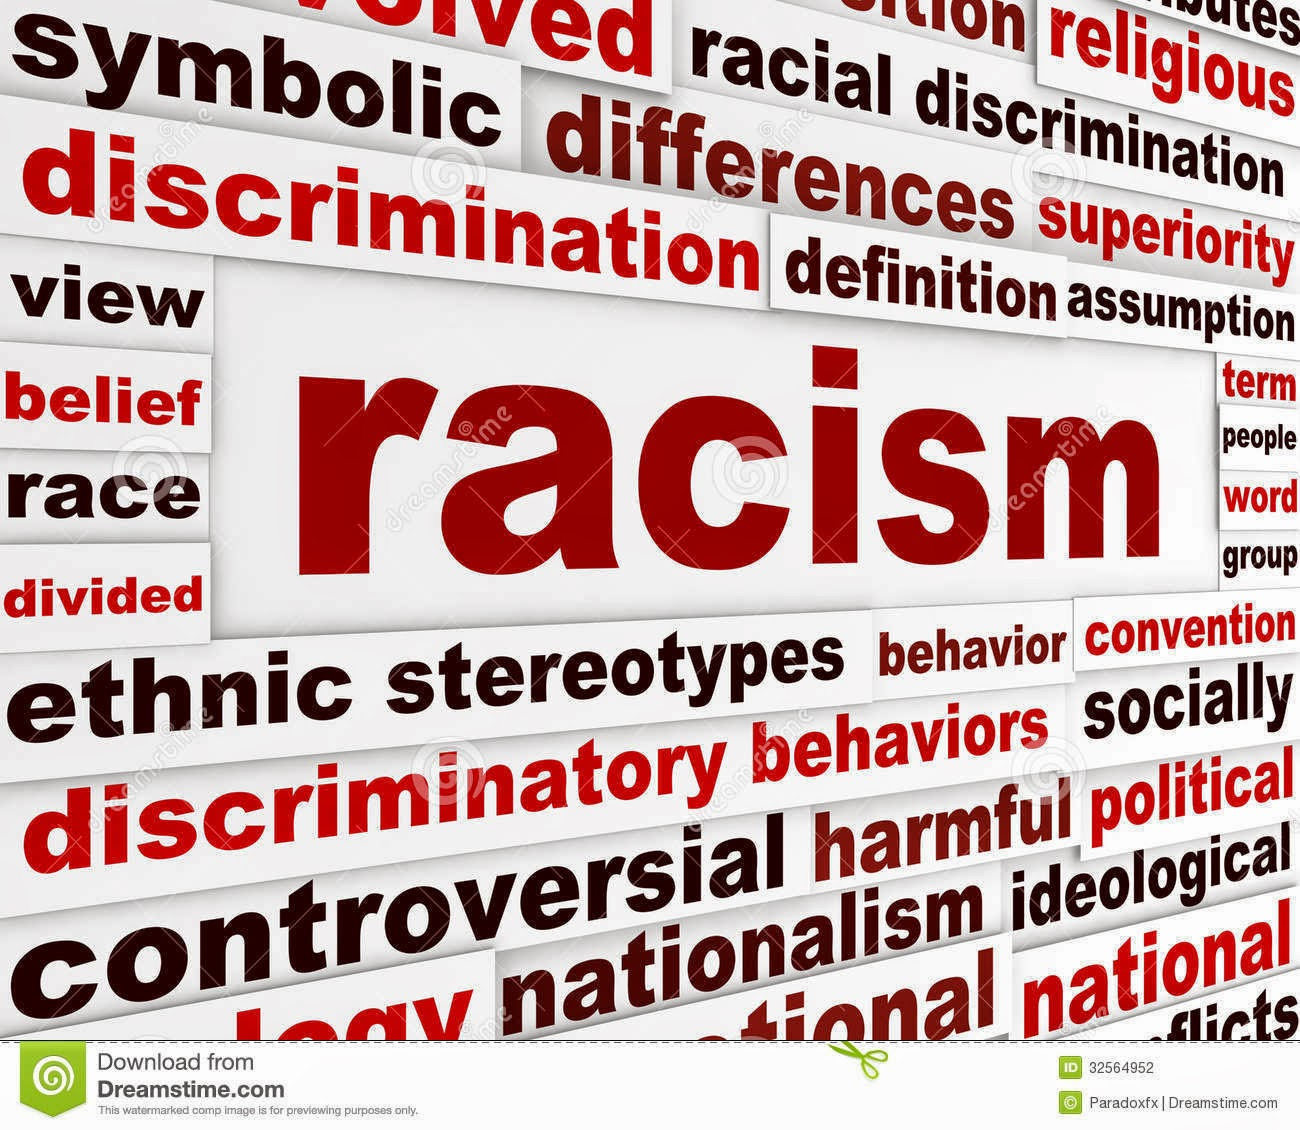 The Coltons Point Times Racism Discrimination